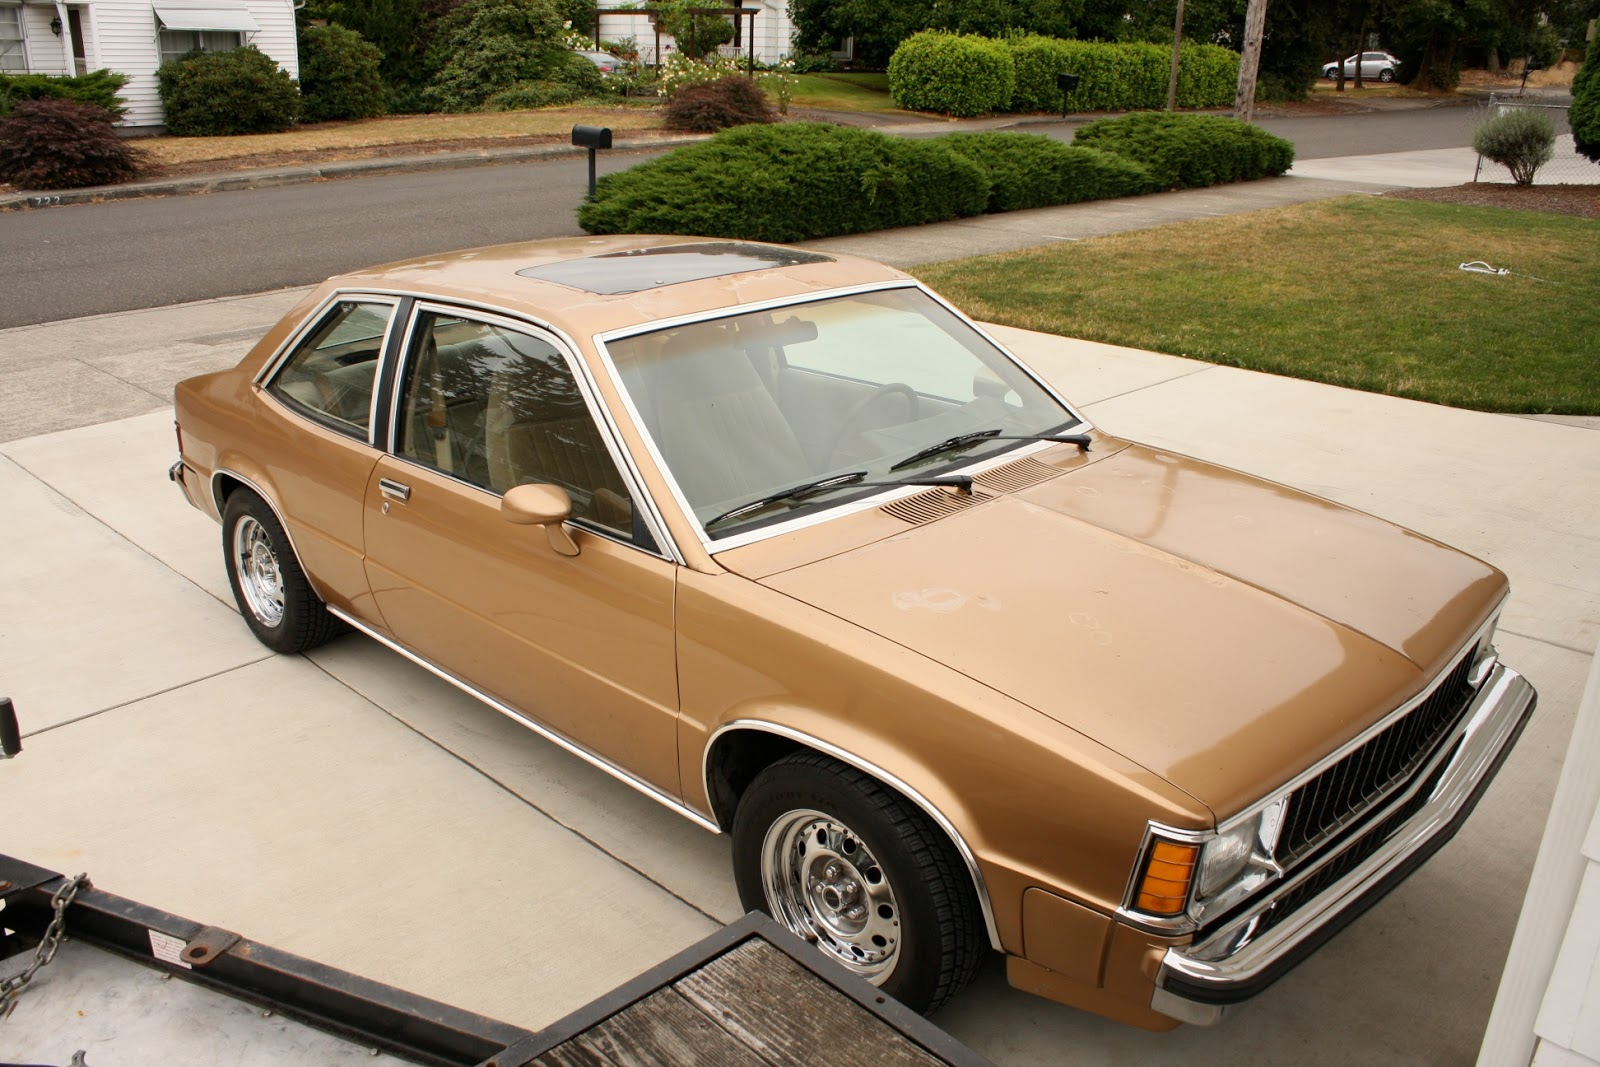 1982 Chevrolet Citation Notchback.